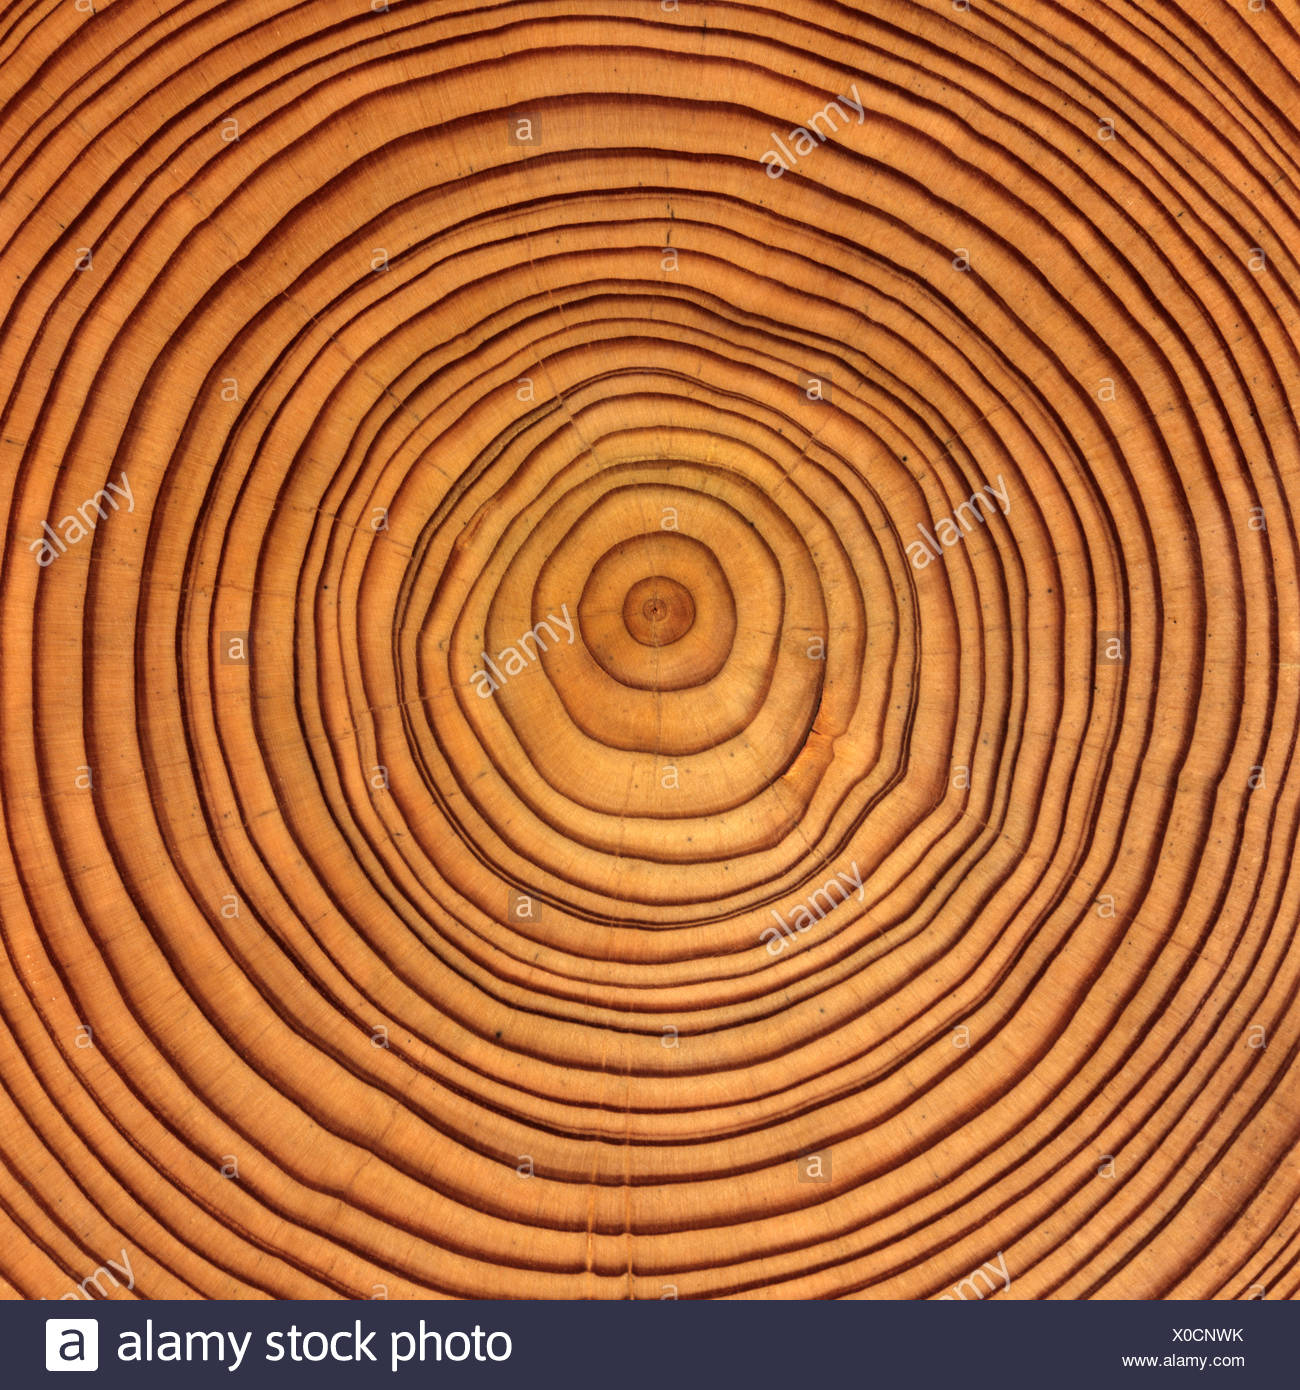 Larch (Larix) tree trunk cross-section: tree rings - Stock Image